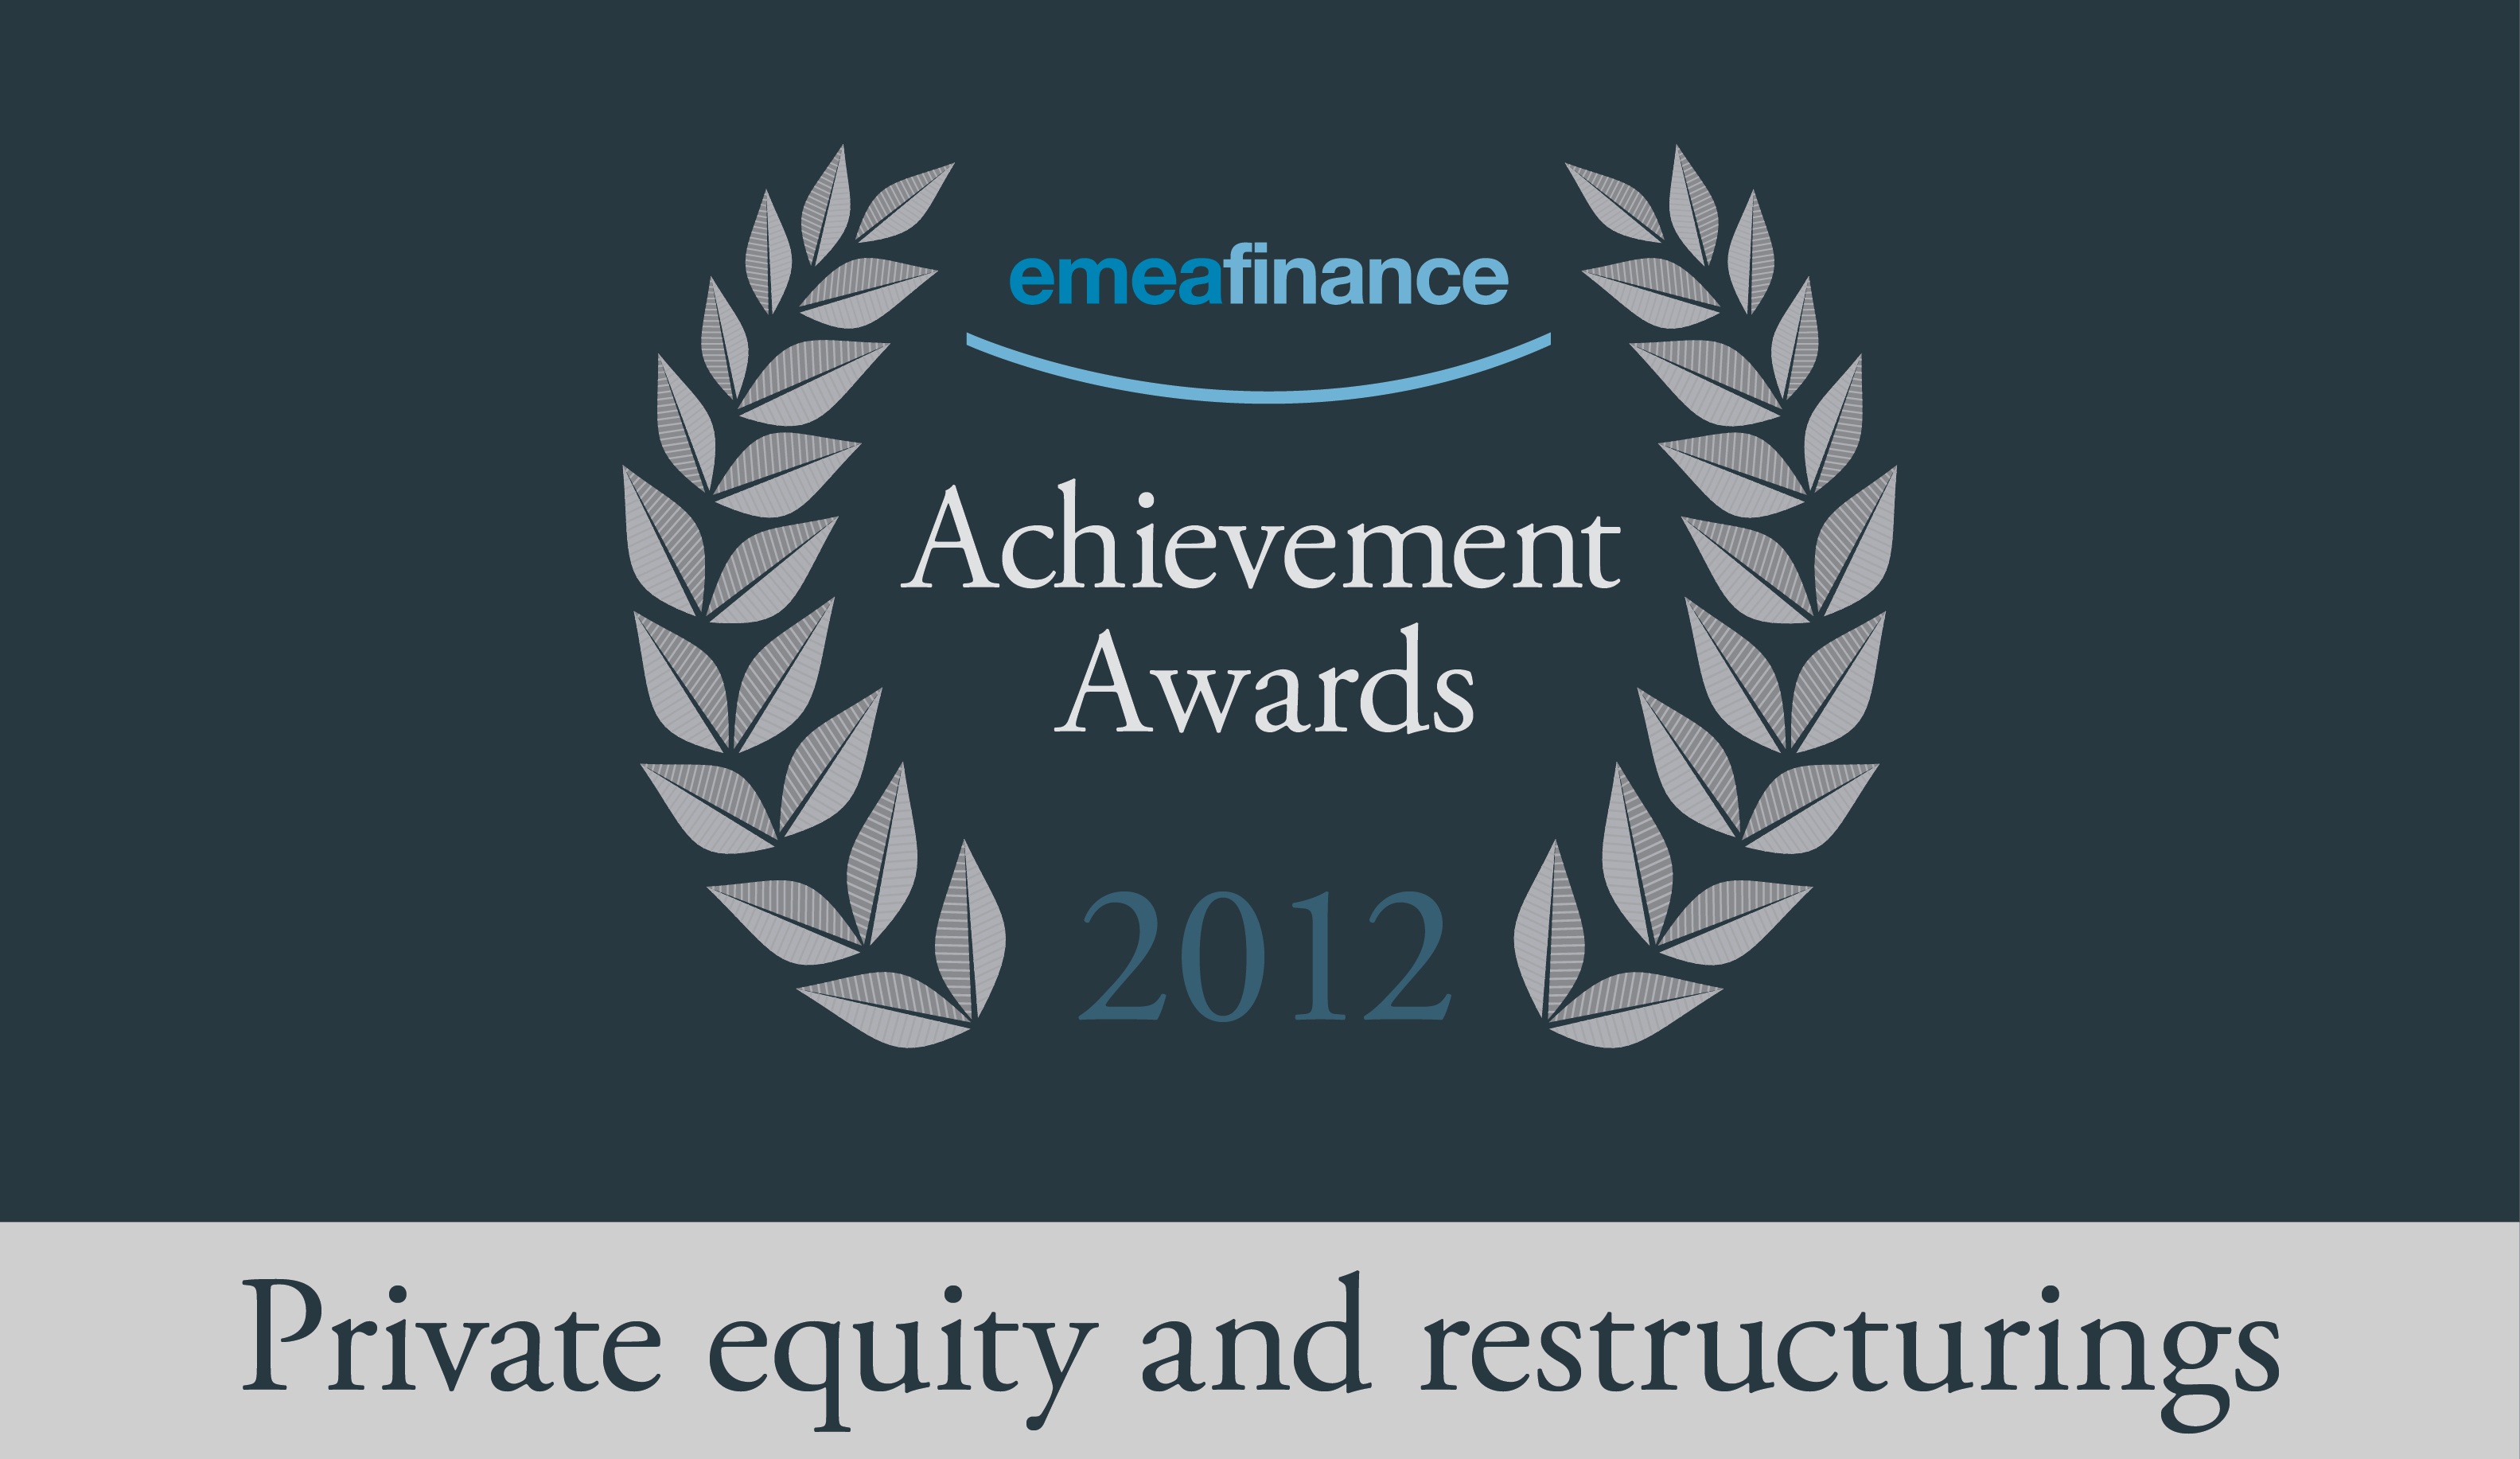 Achievement Awards 2012: Private equity and restructuring